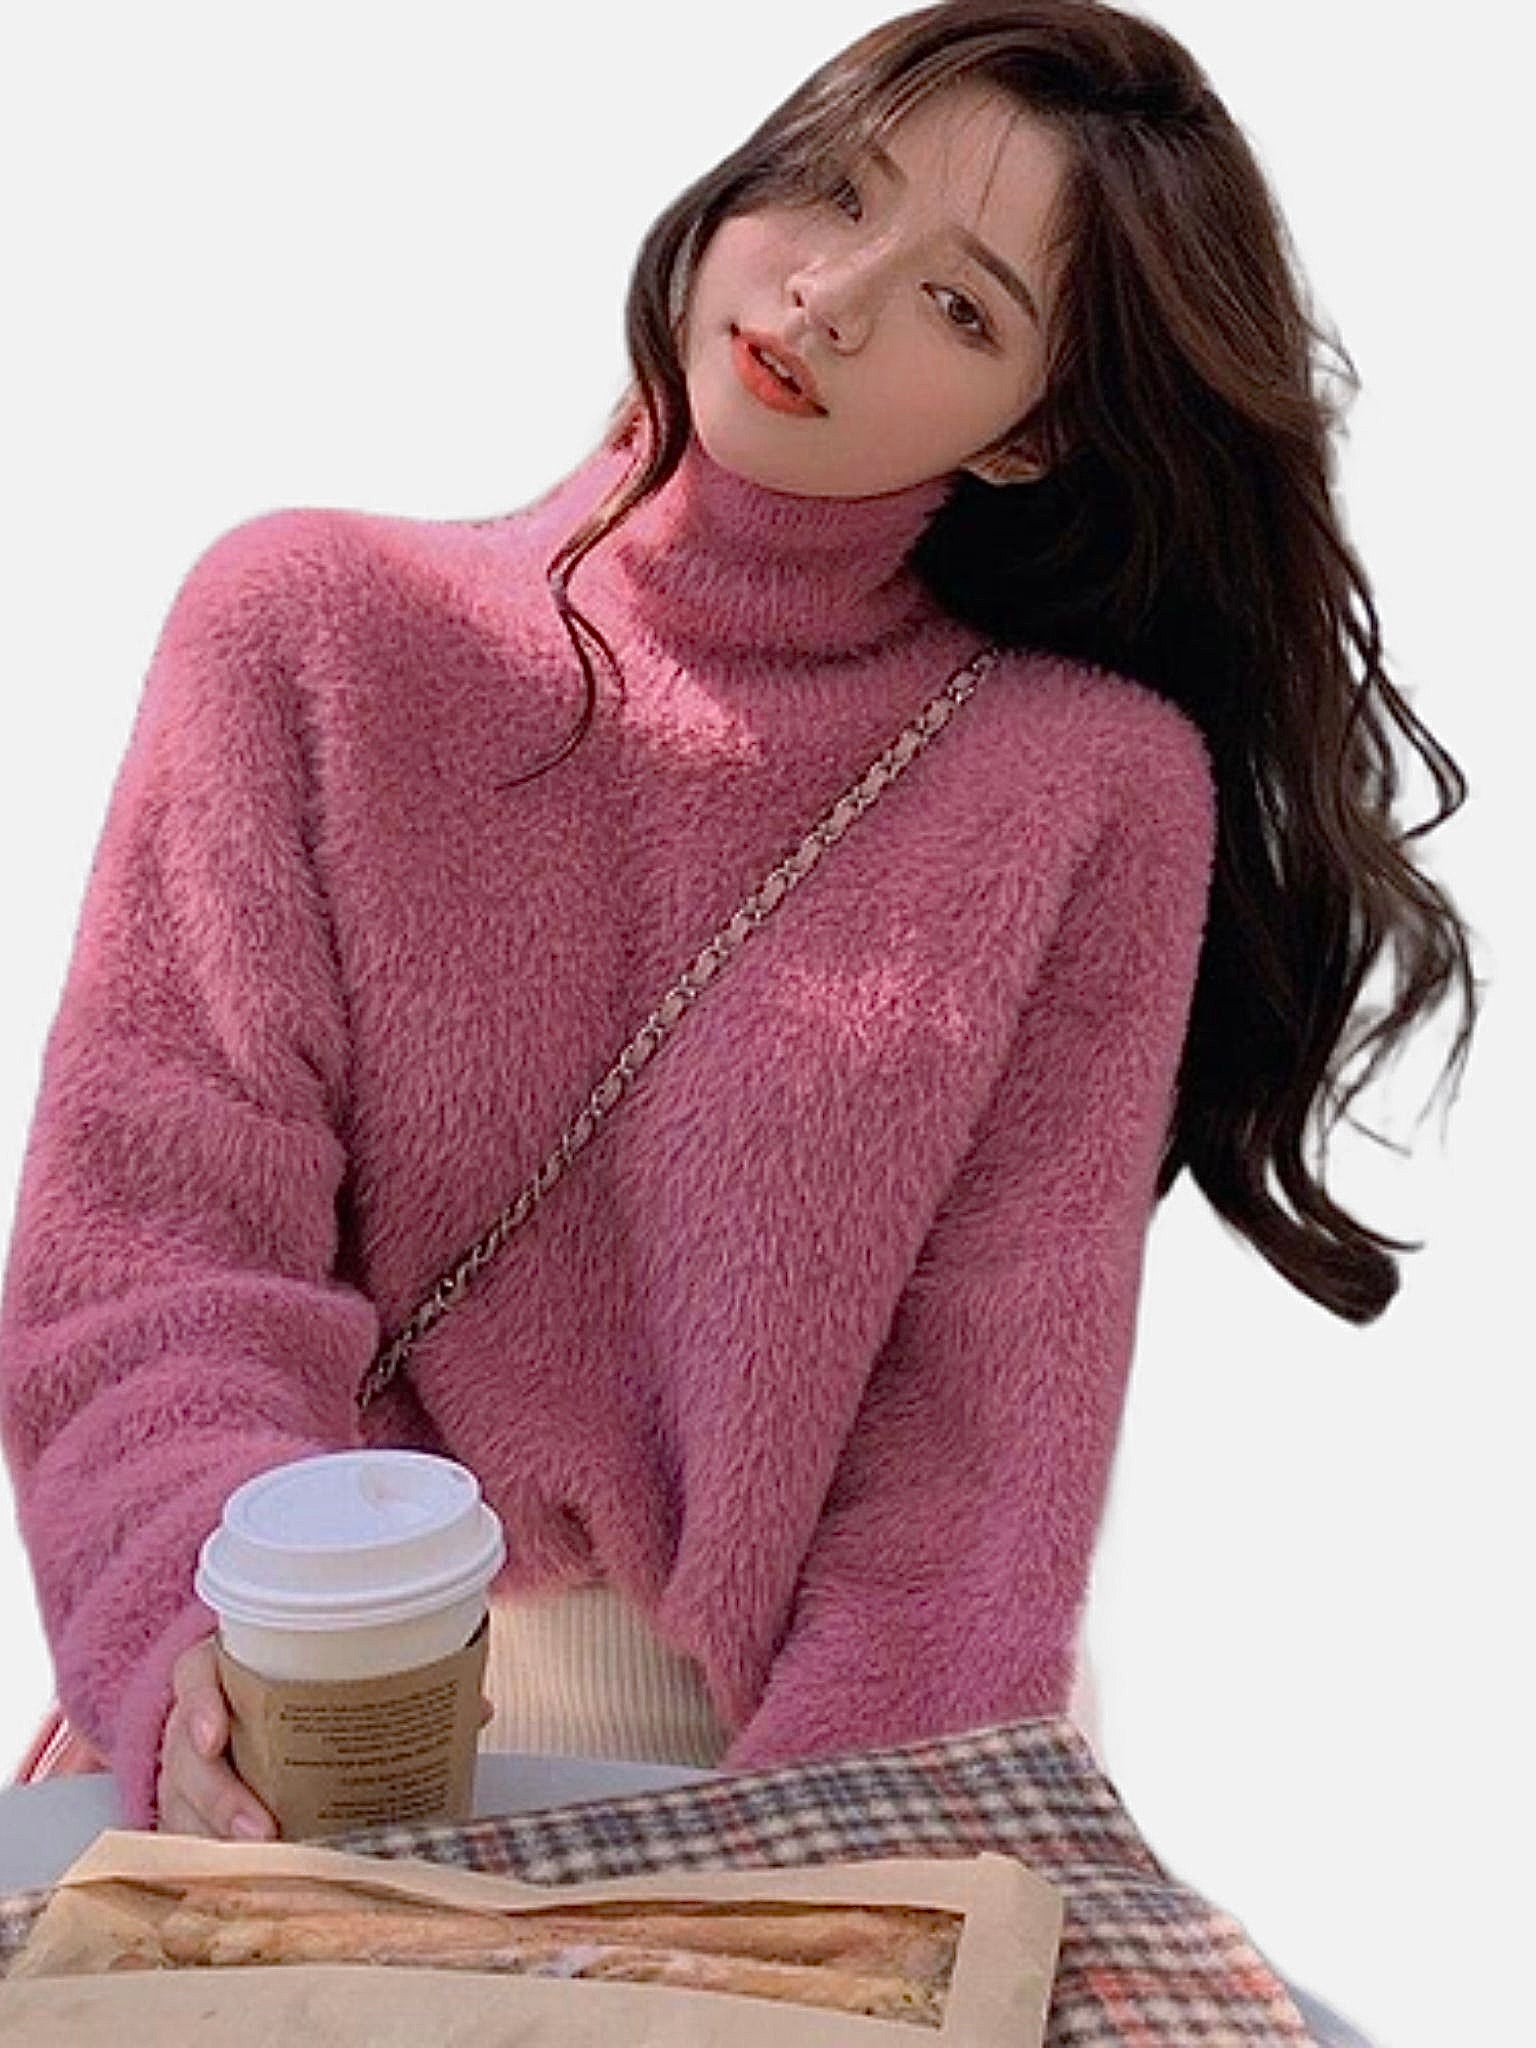 Cozy Turtleneck Sweater    Long Sleeve Sweaters Pink Knit Loose Jumper Women's Pullover Sweaters Trend